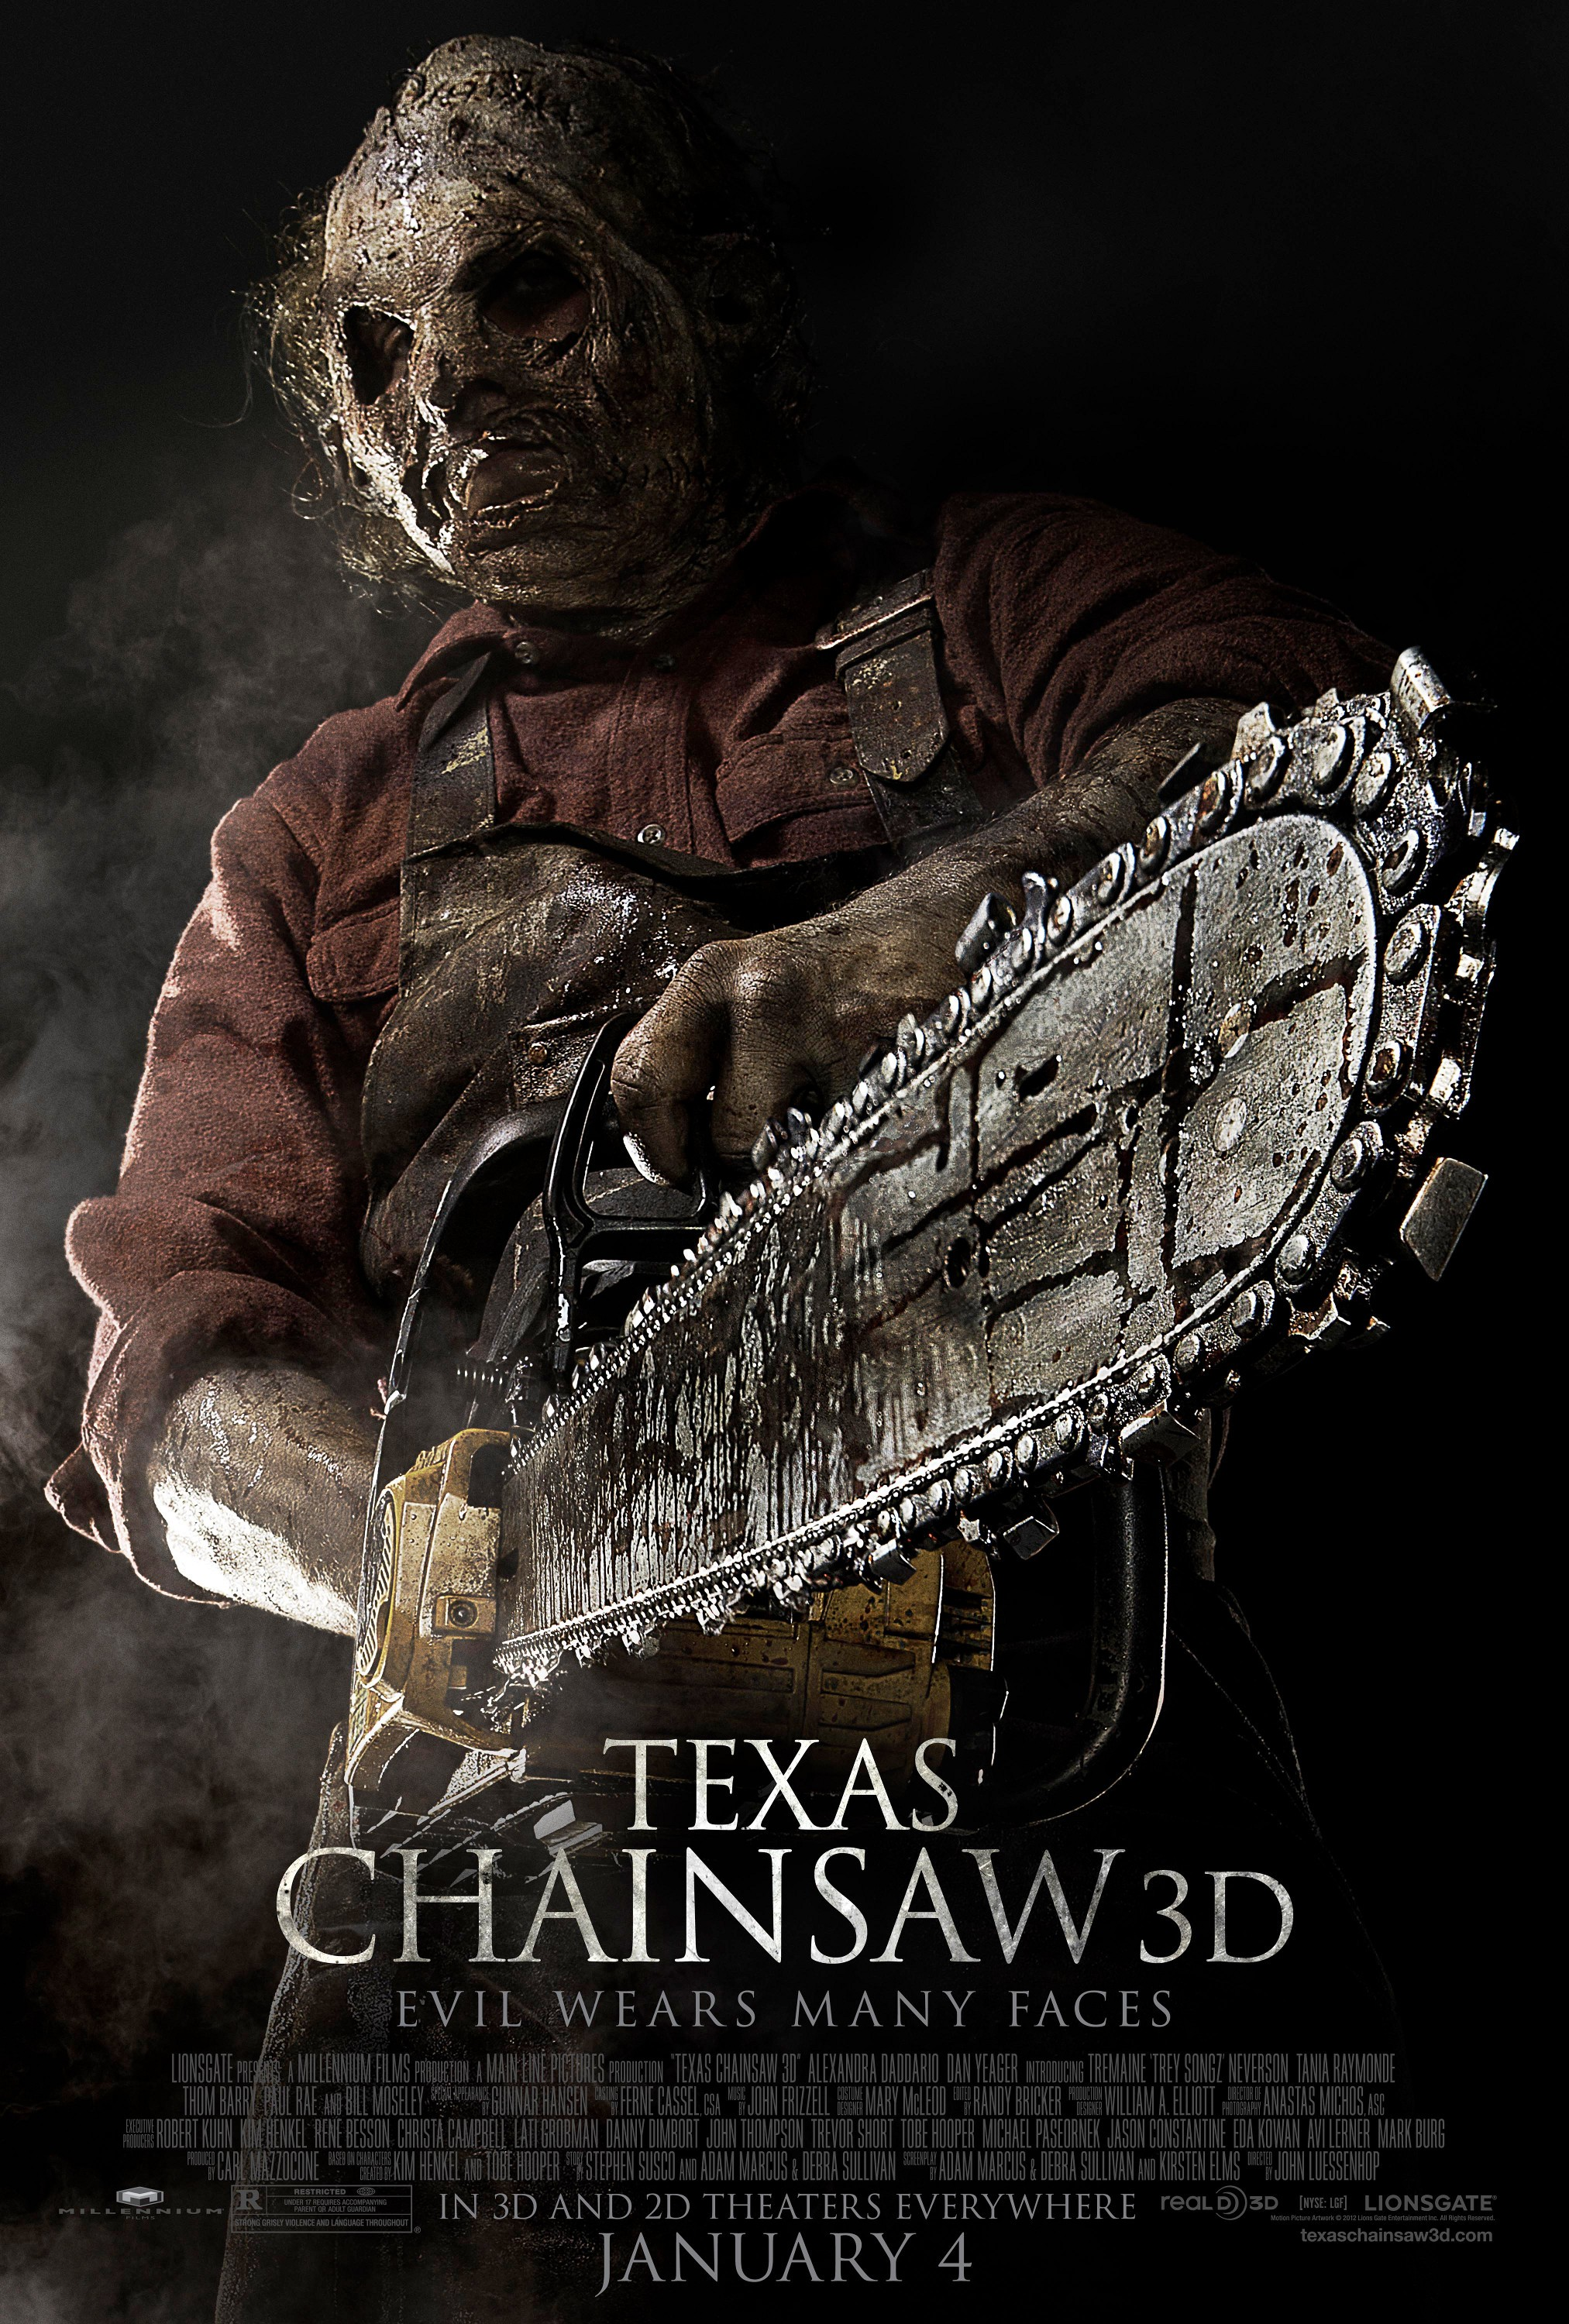 Texas Chainsaw 3D - Poster - 003